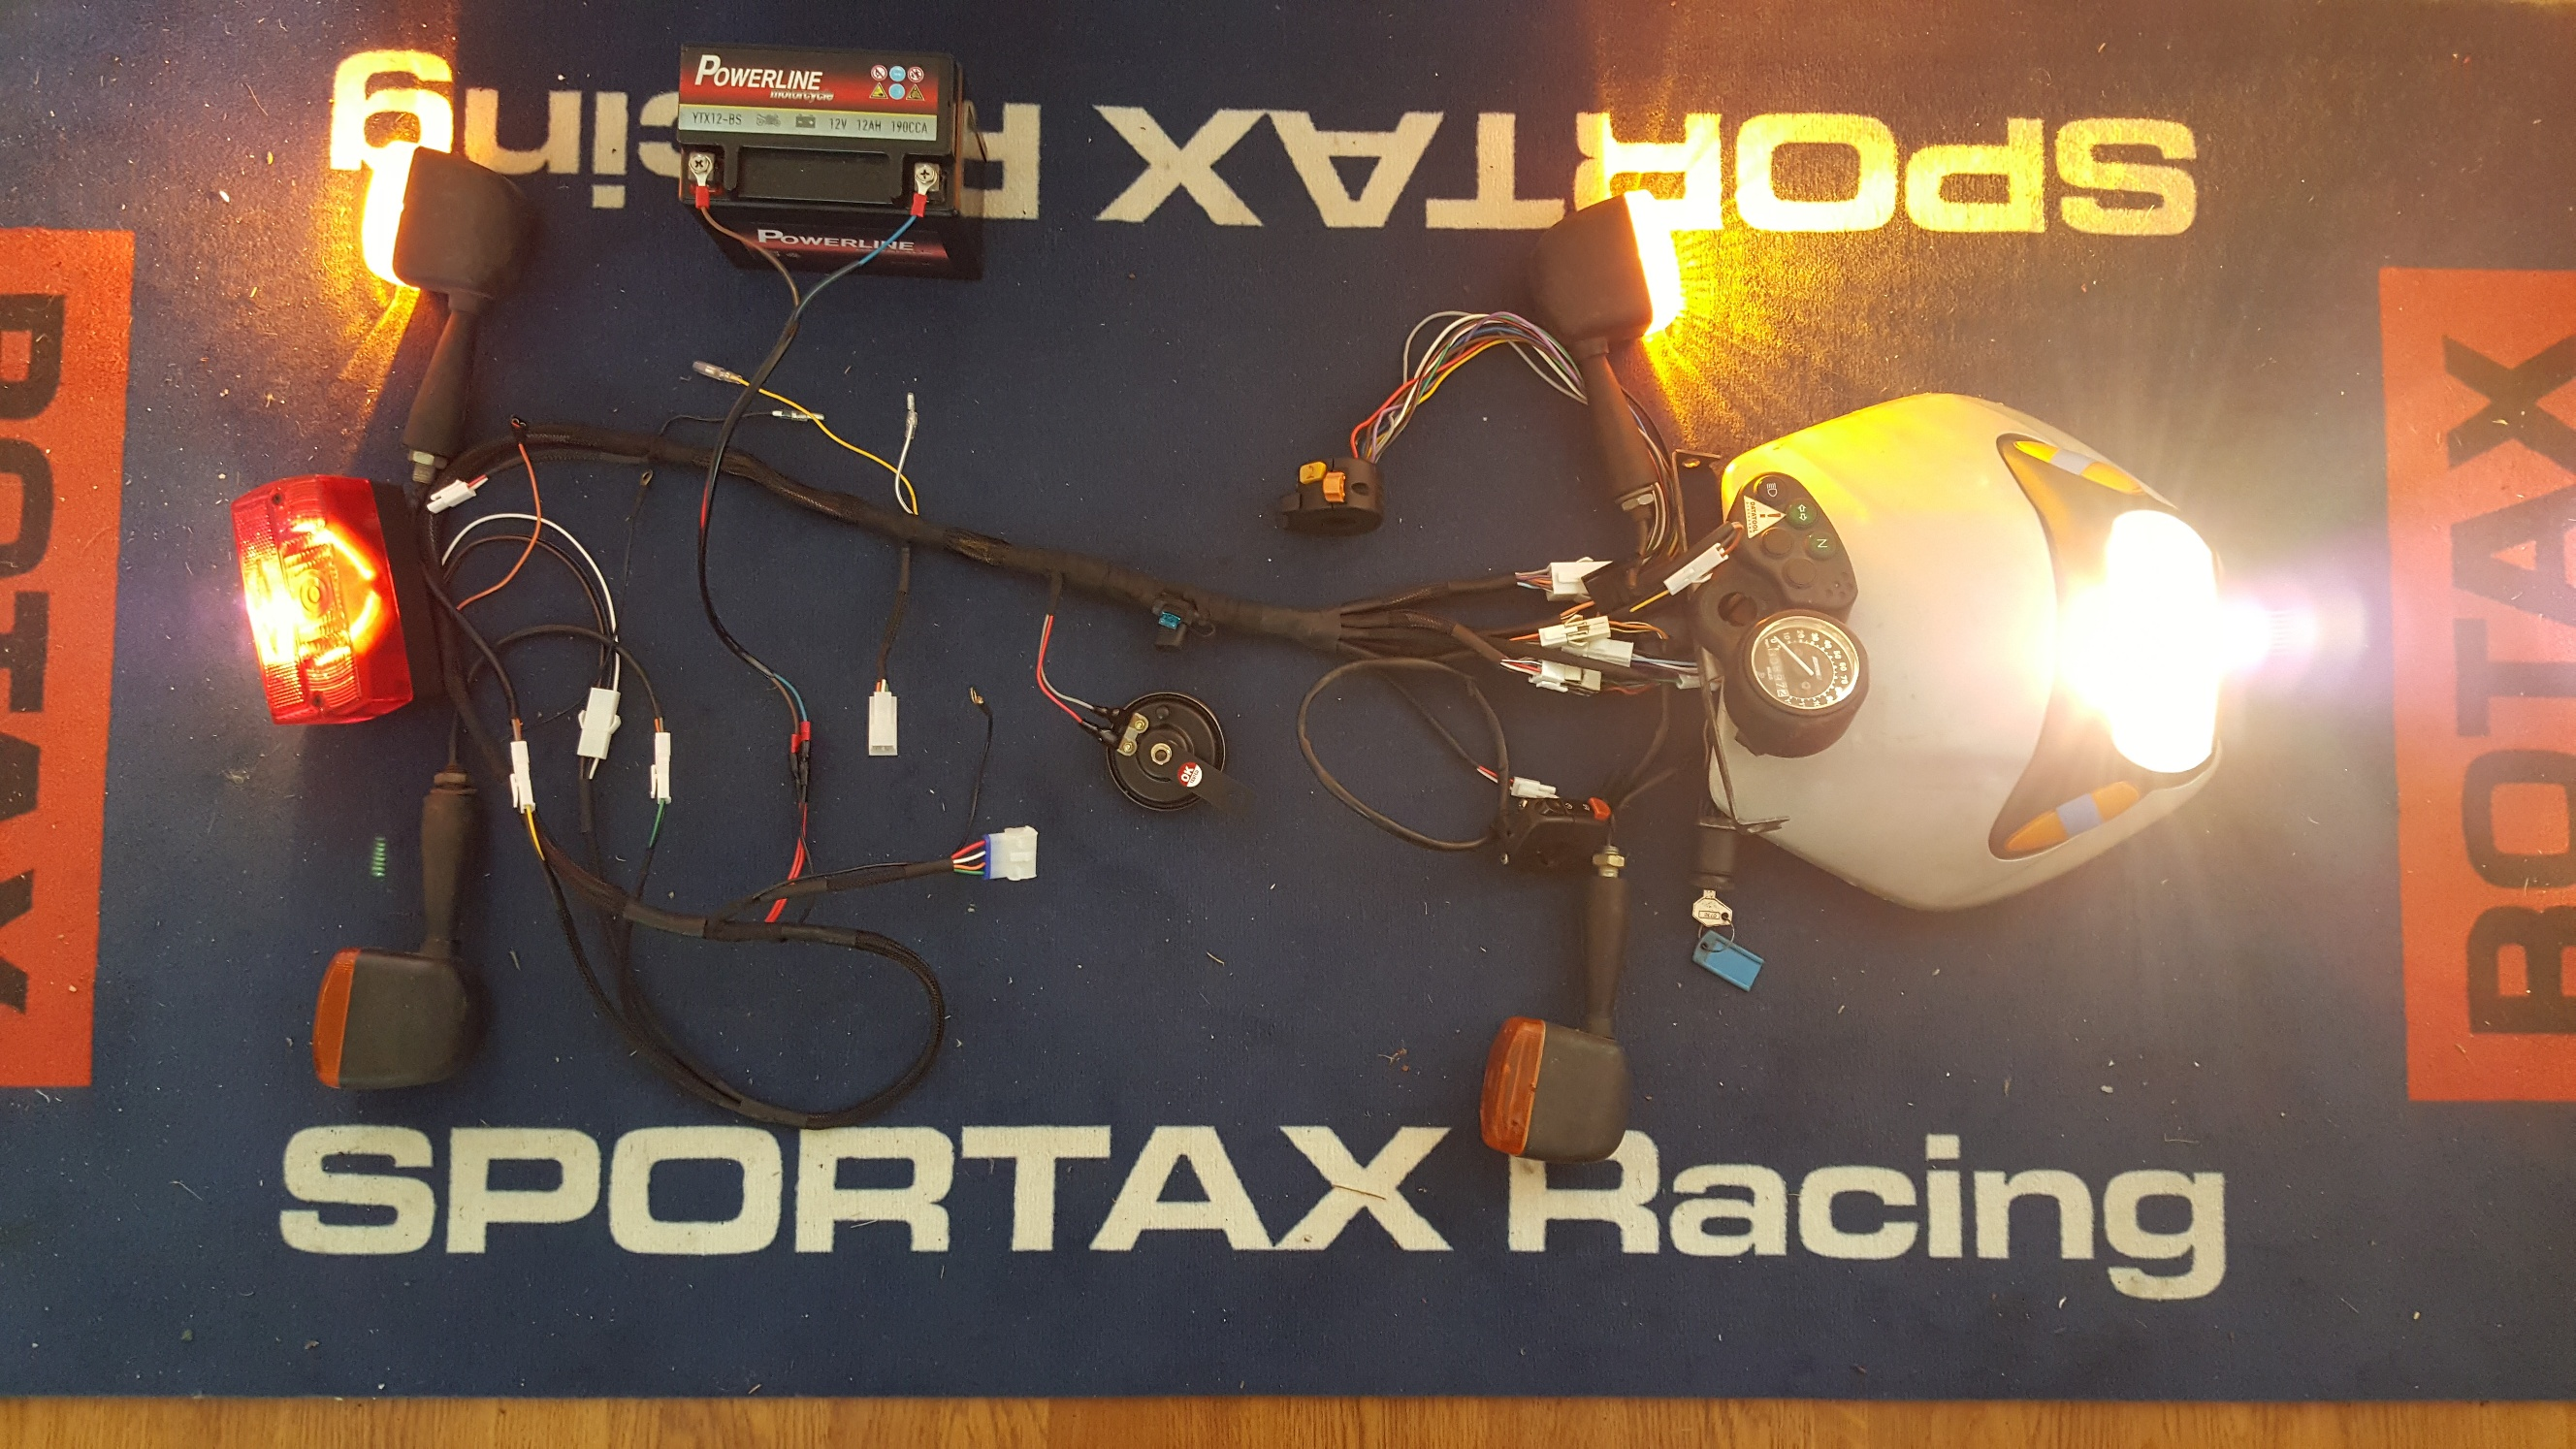 Ccm 604 Main Wiring Harness Sportax Racing Motorcycle Manufacturers Uk Above You Can See A Picture Of The Loom During Manufacture And Being Tested